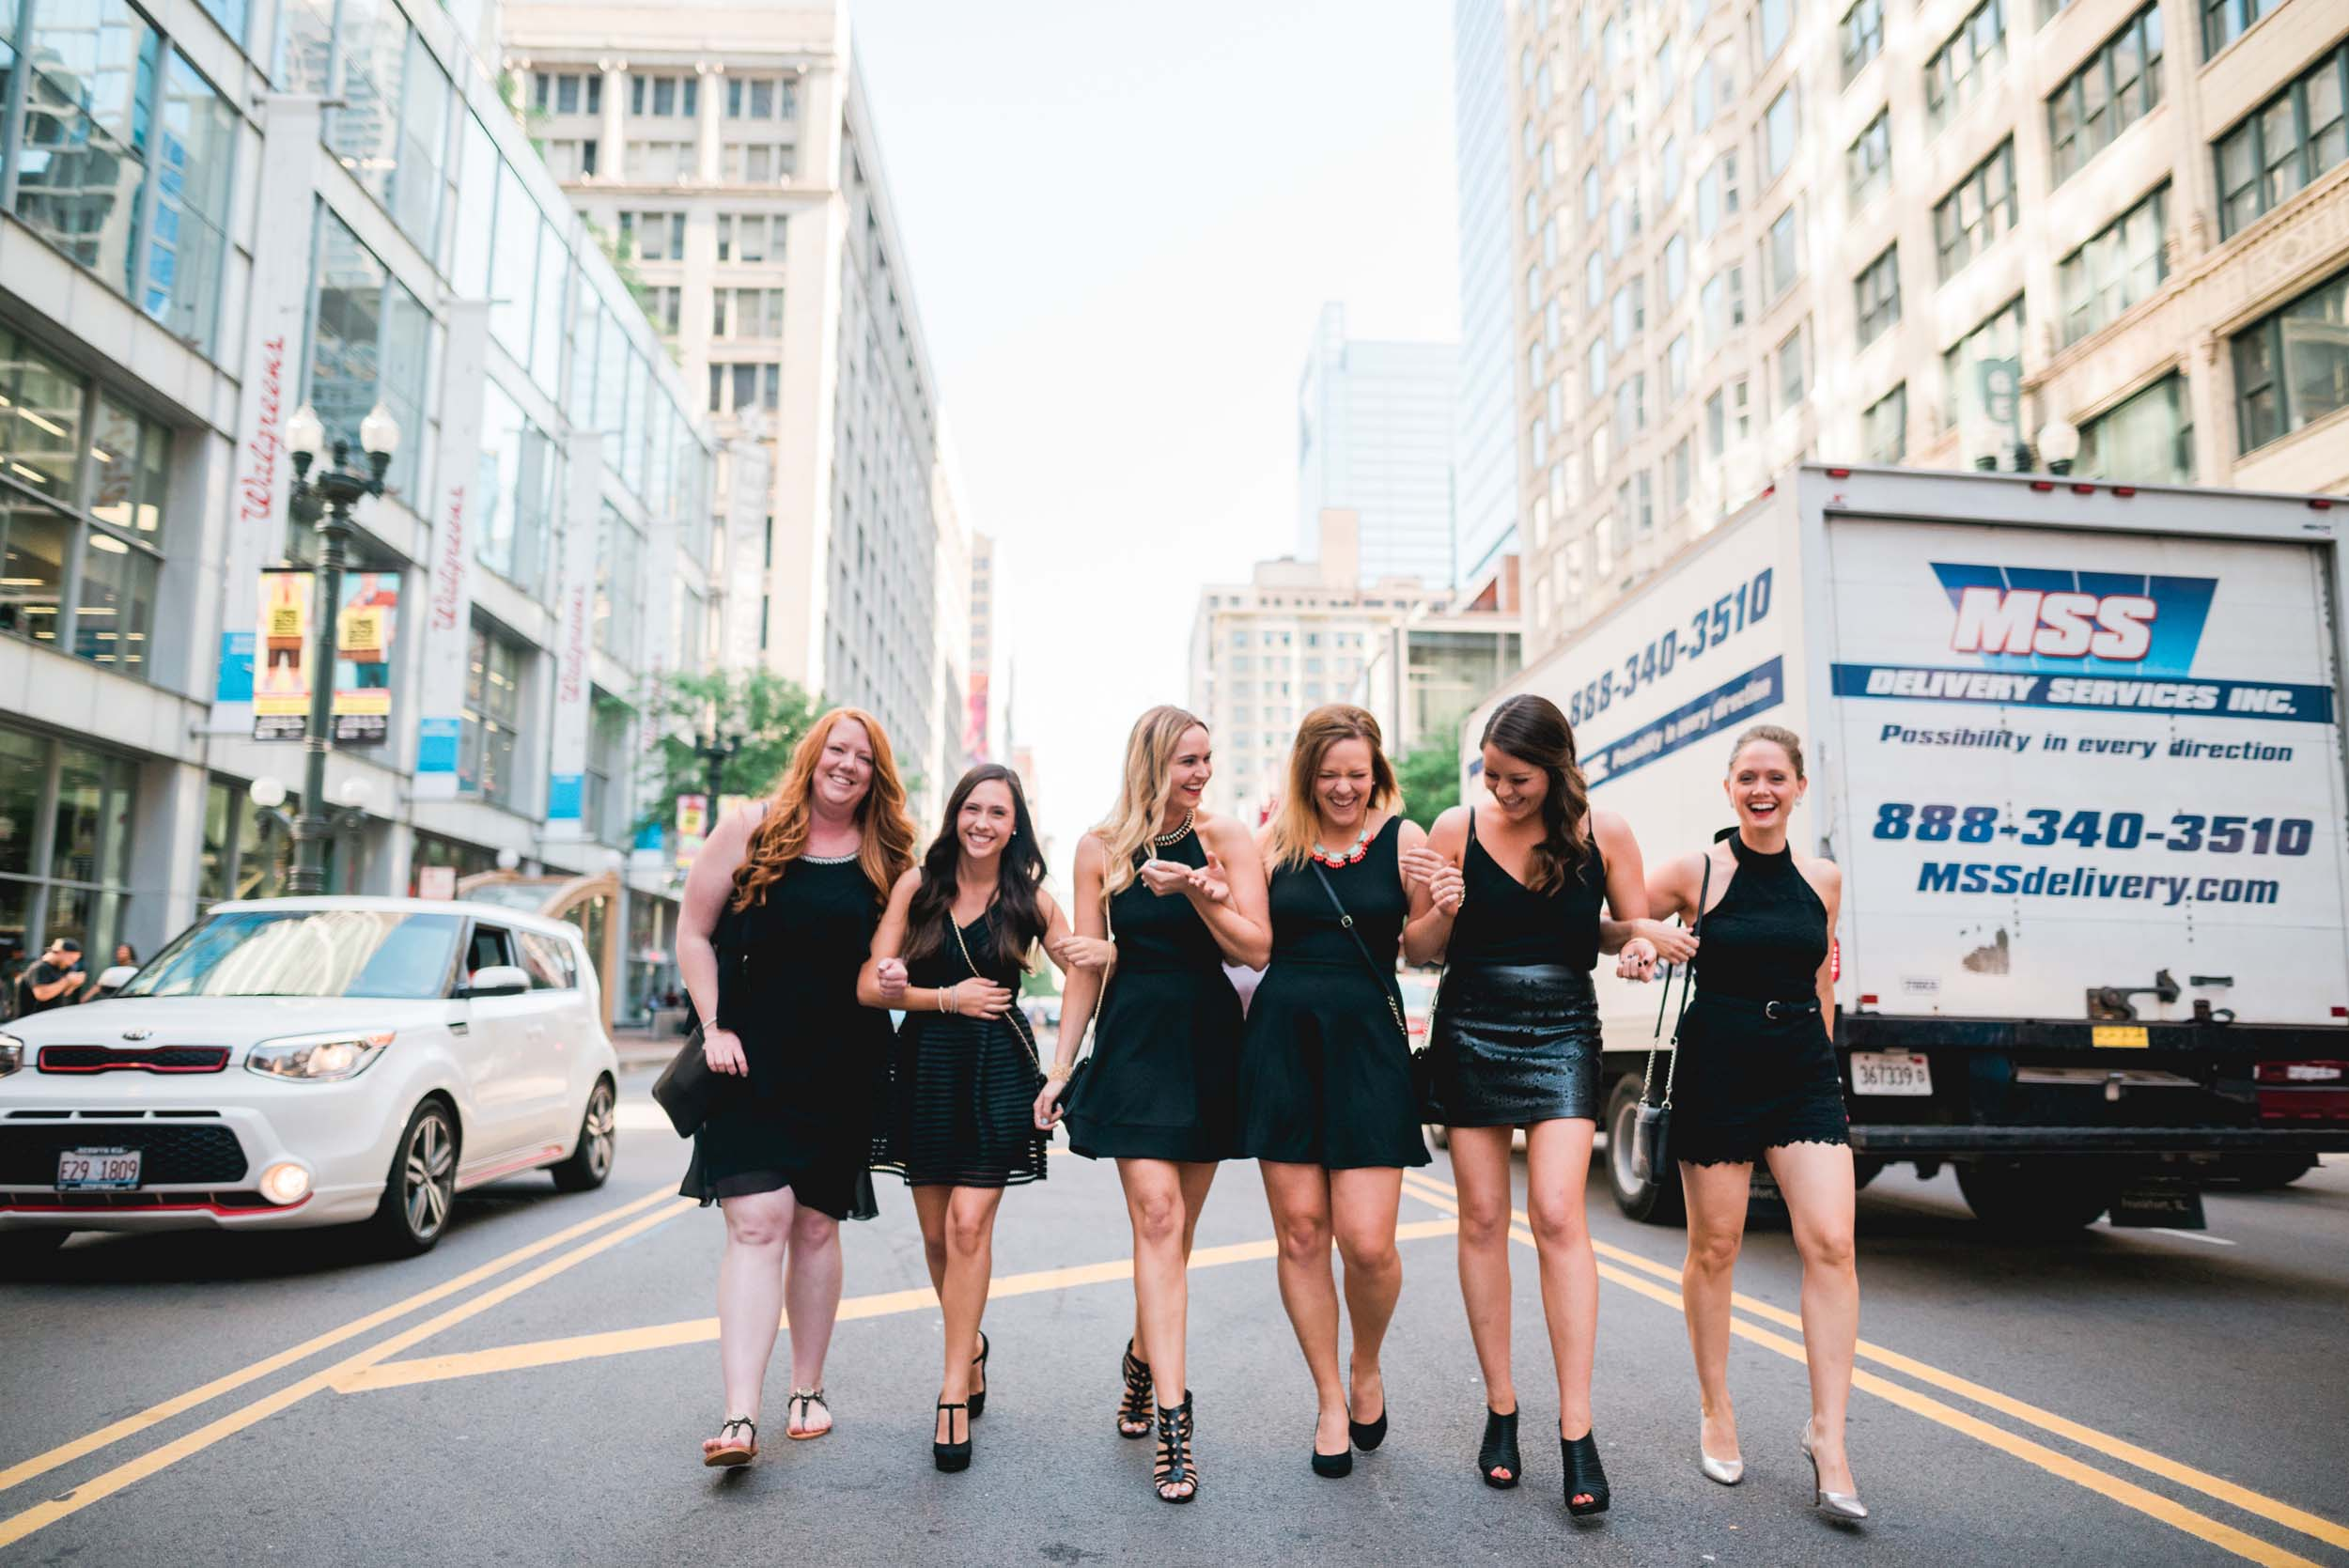 Six female friends walking together down a street on a bachelorette trip in Chicago, USA